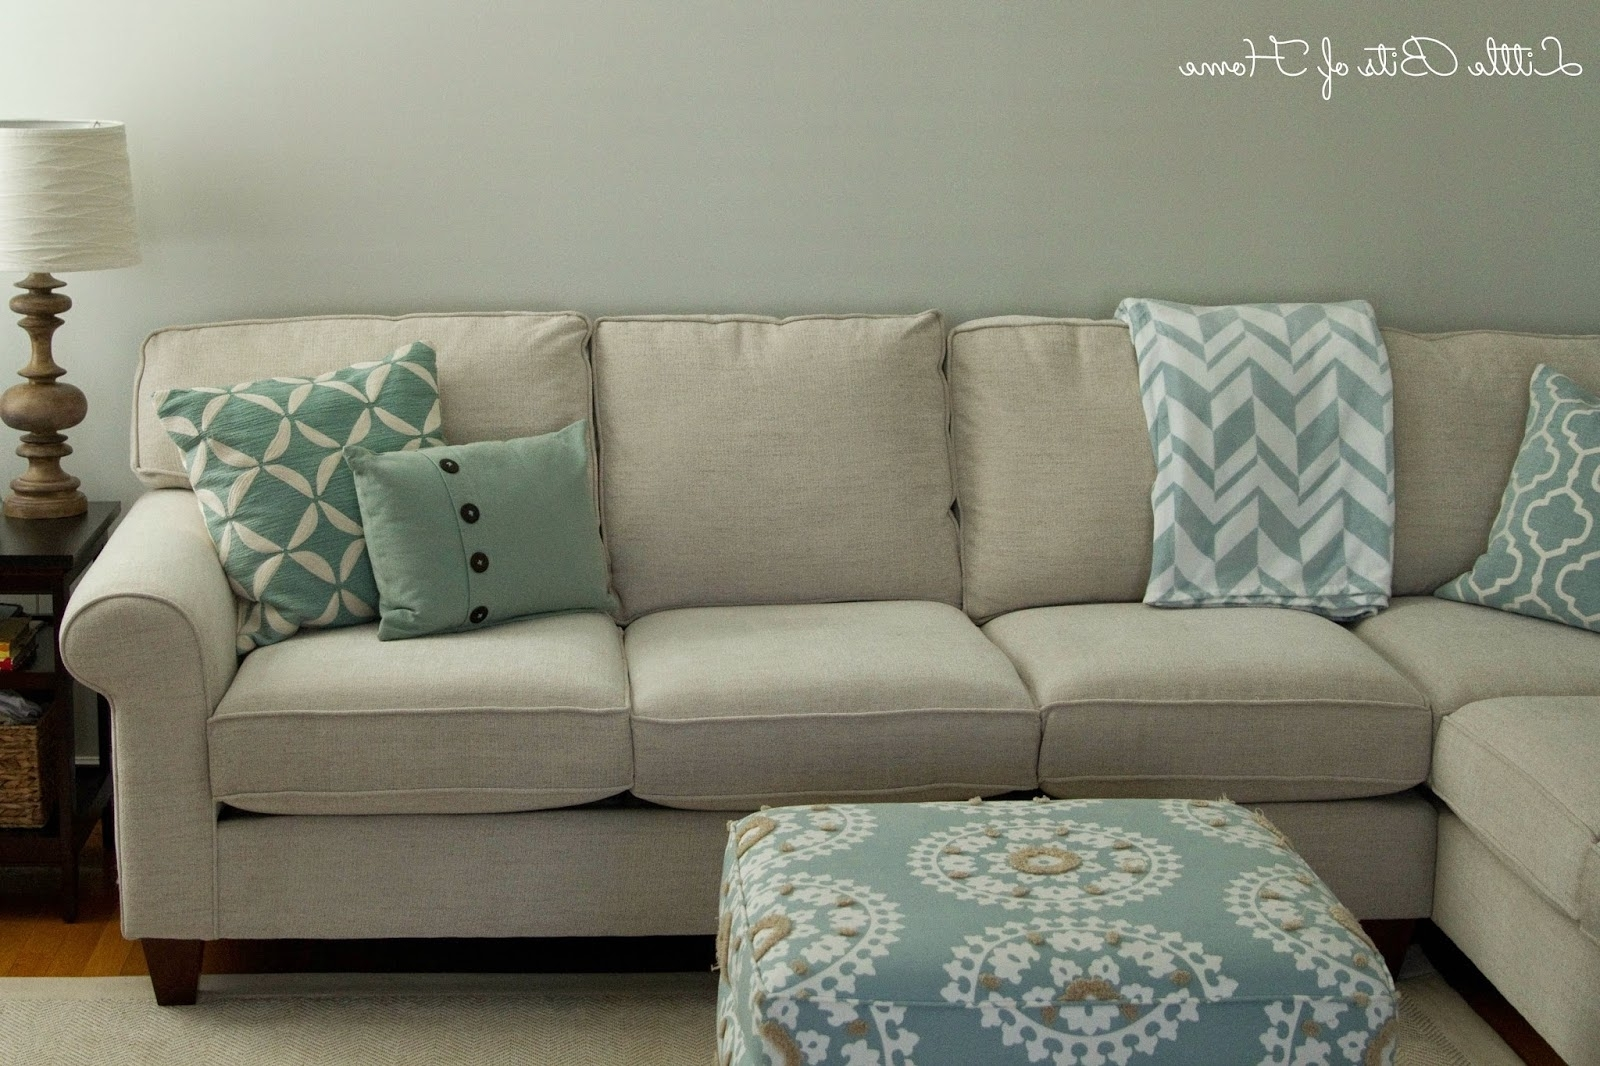 Living Room Makeover: Couch Redo Within Most Recent Havertys Sectional Sofas (View 7 of 15)